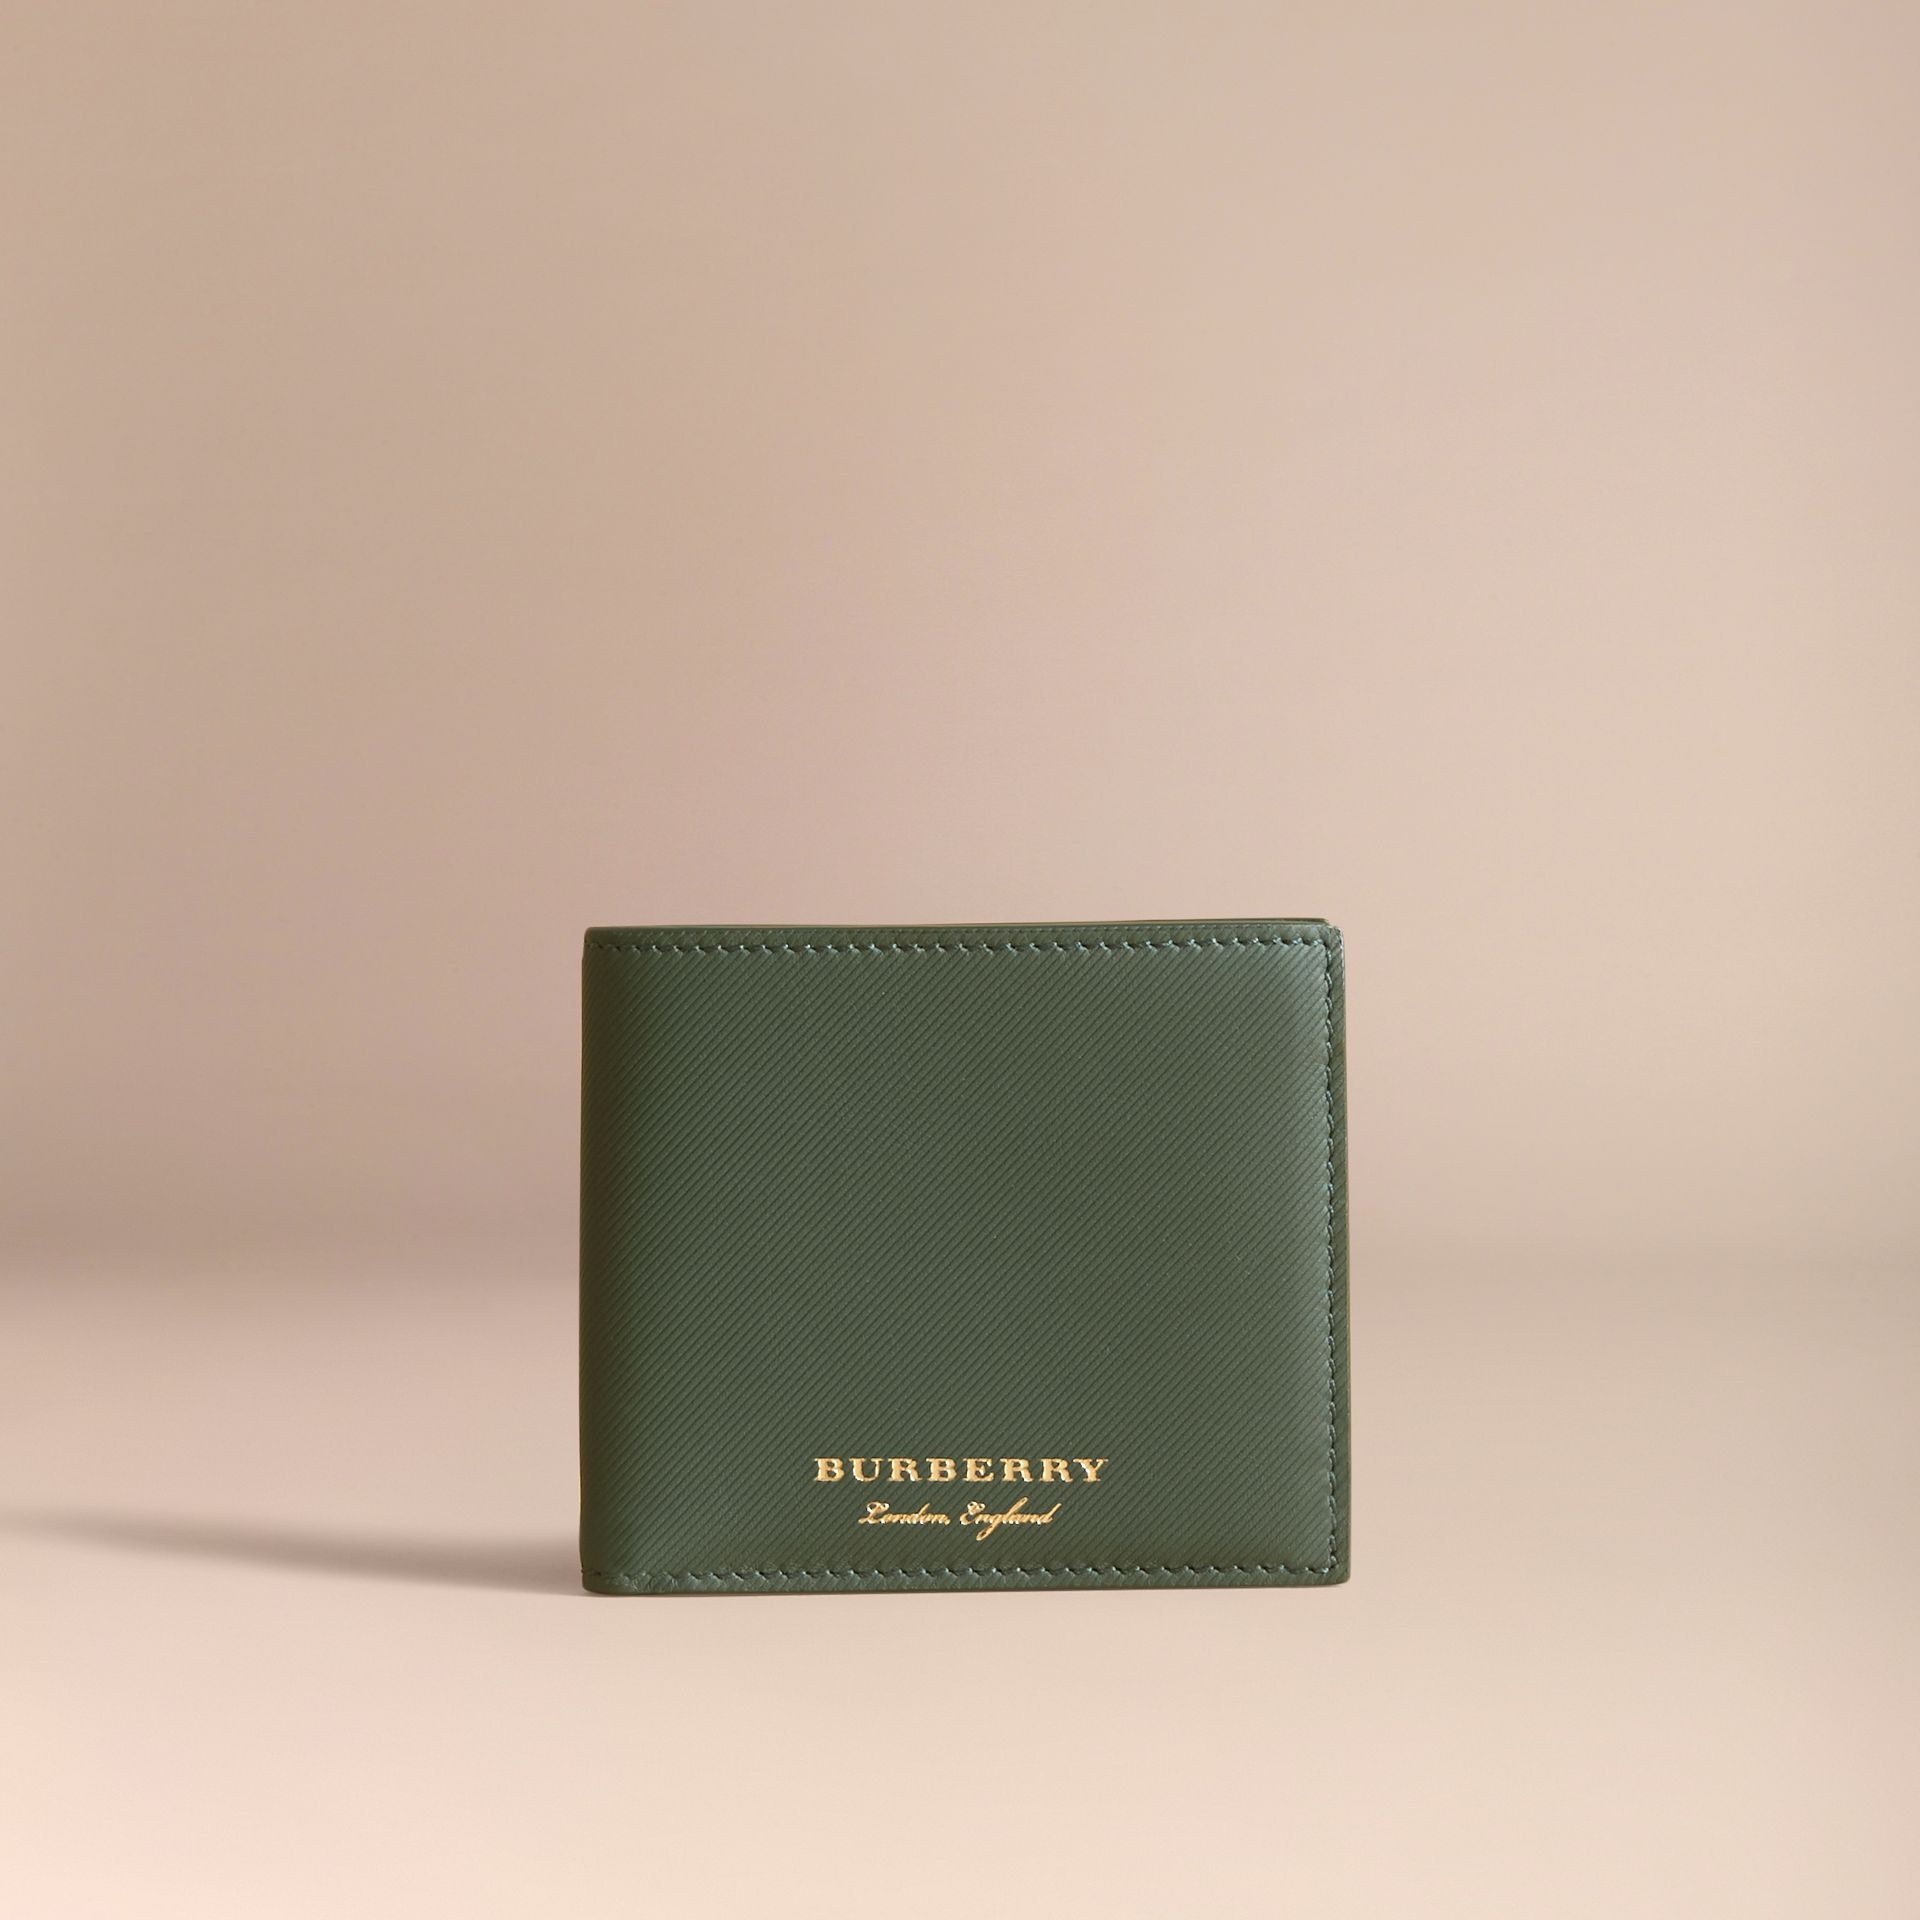 Trench Leather International Bifold Wallet in Dark Forest Green - Men | Burberry - gallery image 6